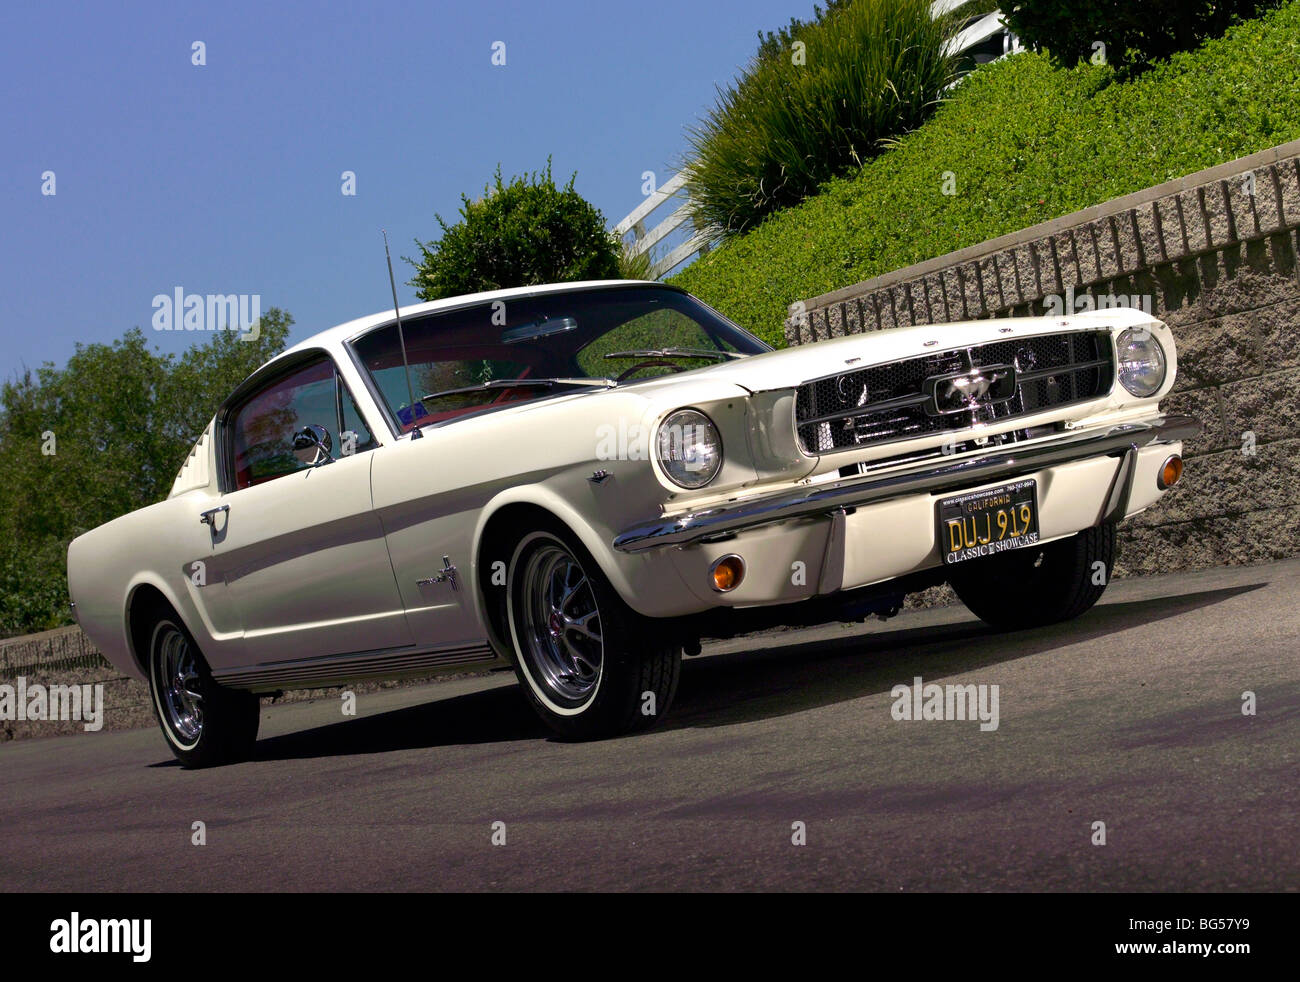 Ford Mustang Coupe Stock Photos   Ford Mustang Coupe Stock Images ... 1f3326eda0